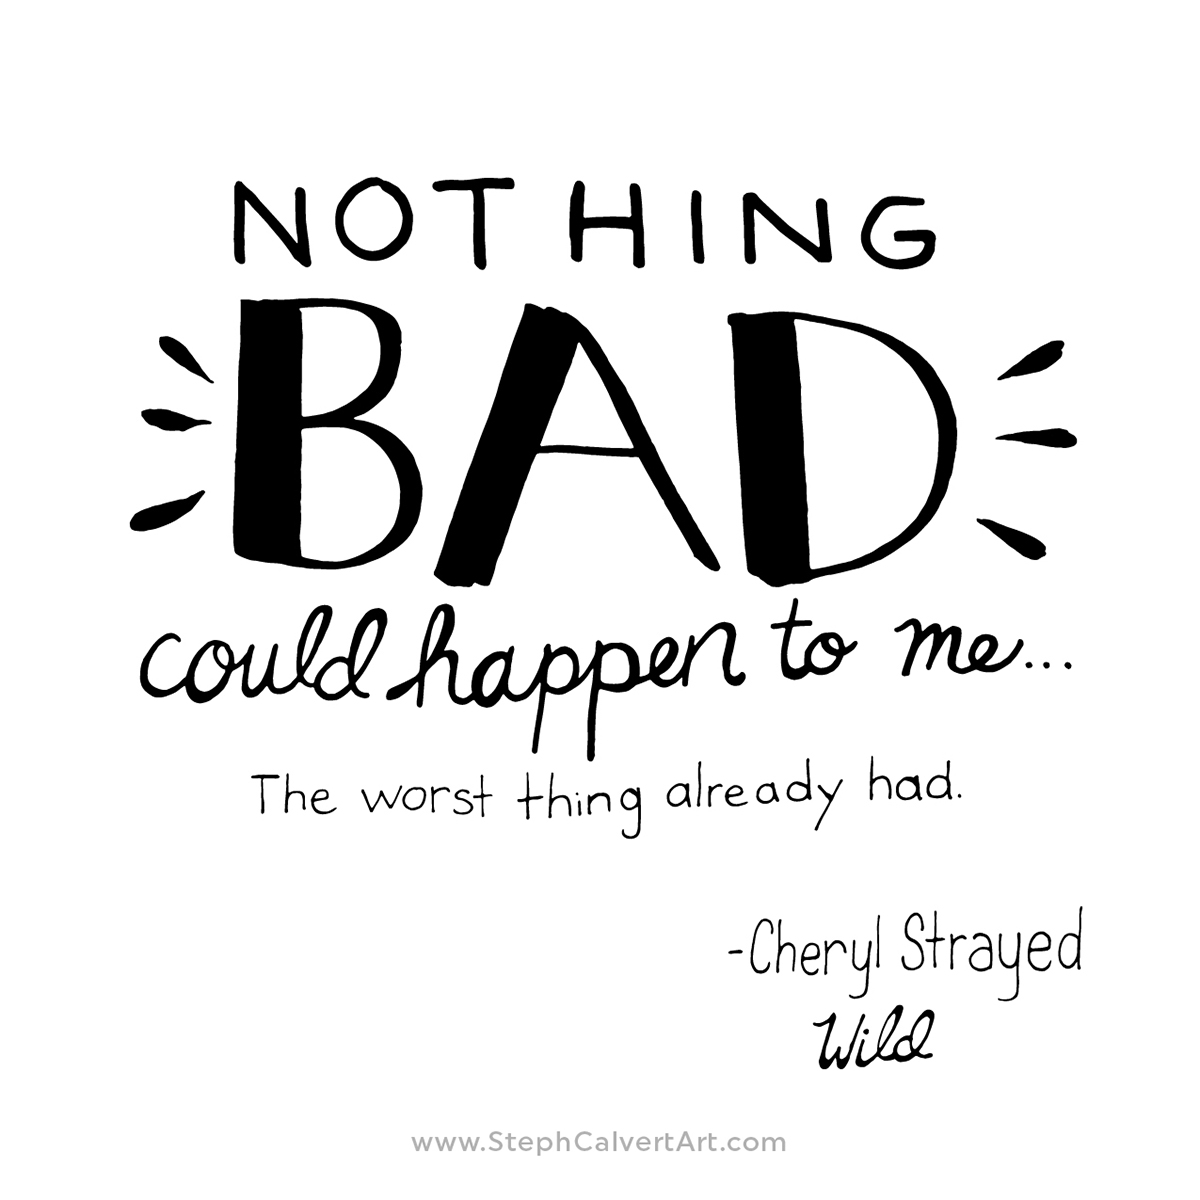 Nothing Bad Could Happen inspirational quote hand lettering by Steph Calvert